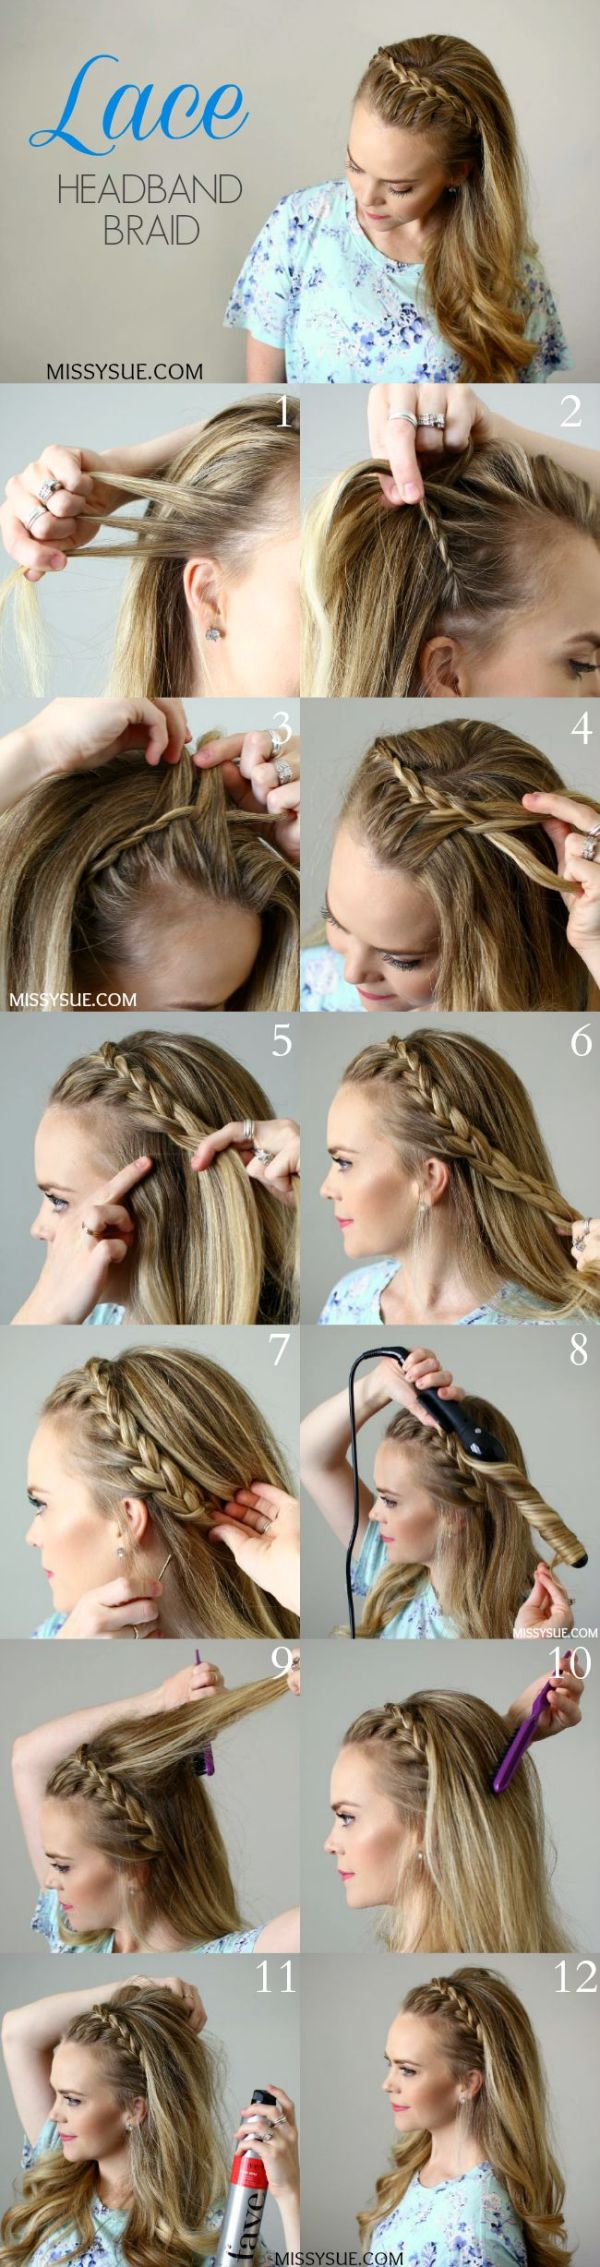 Lace Headband Braid.